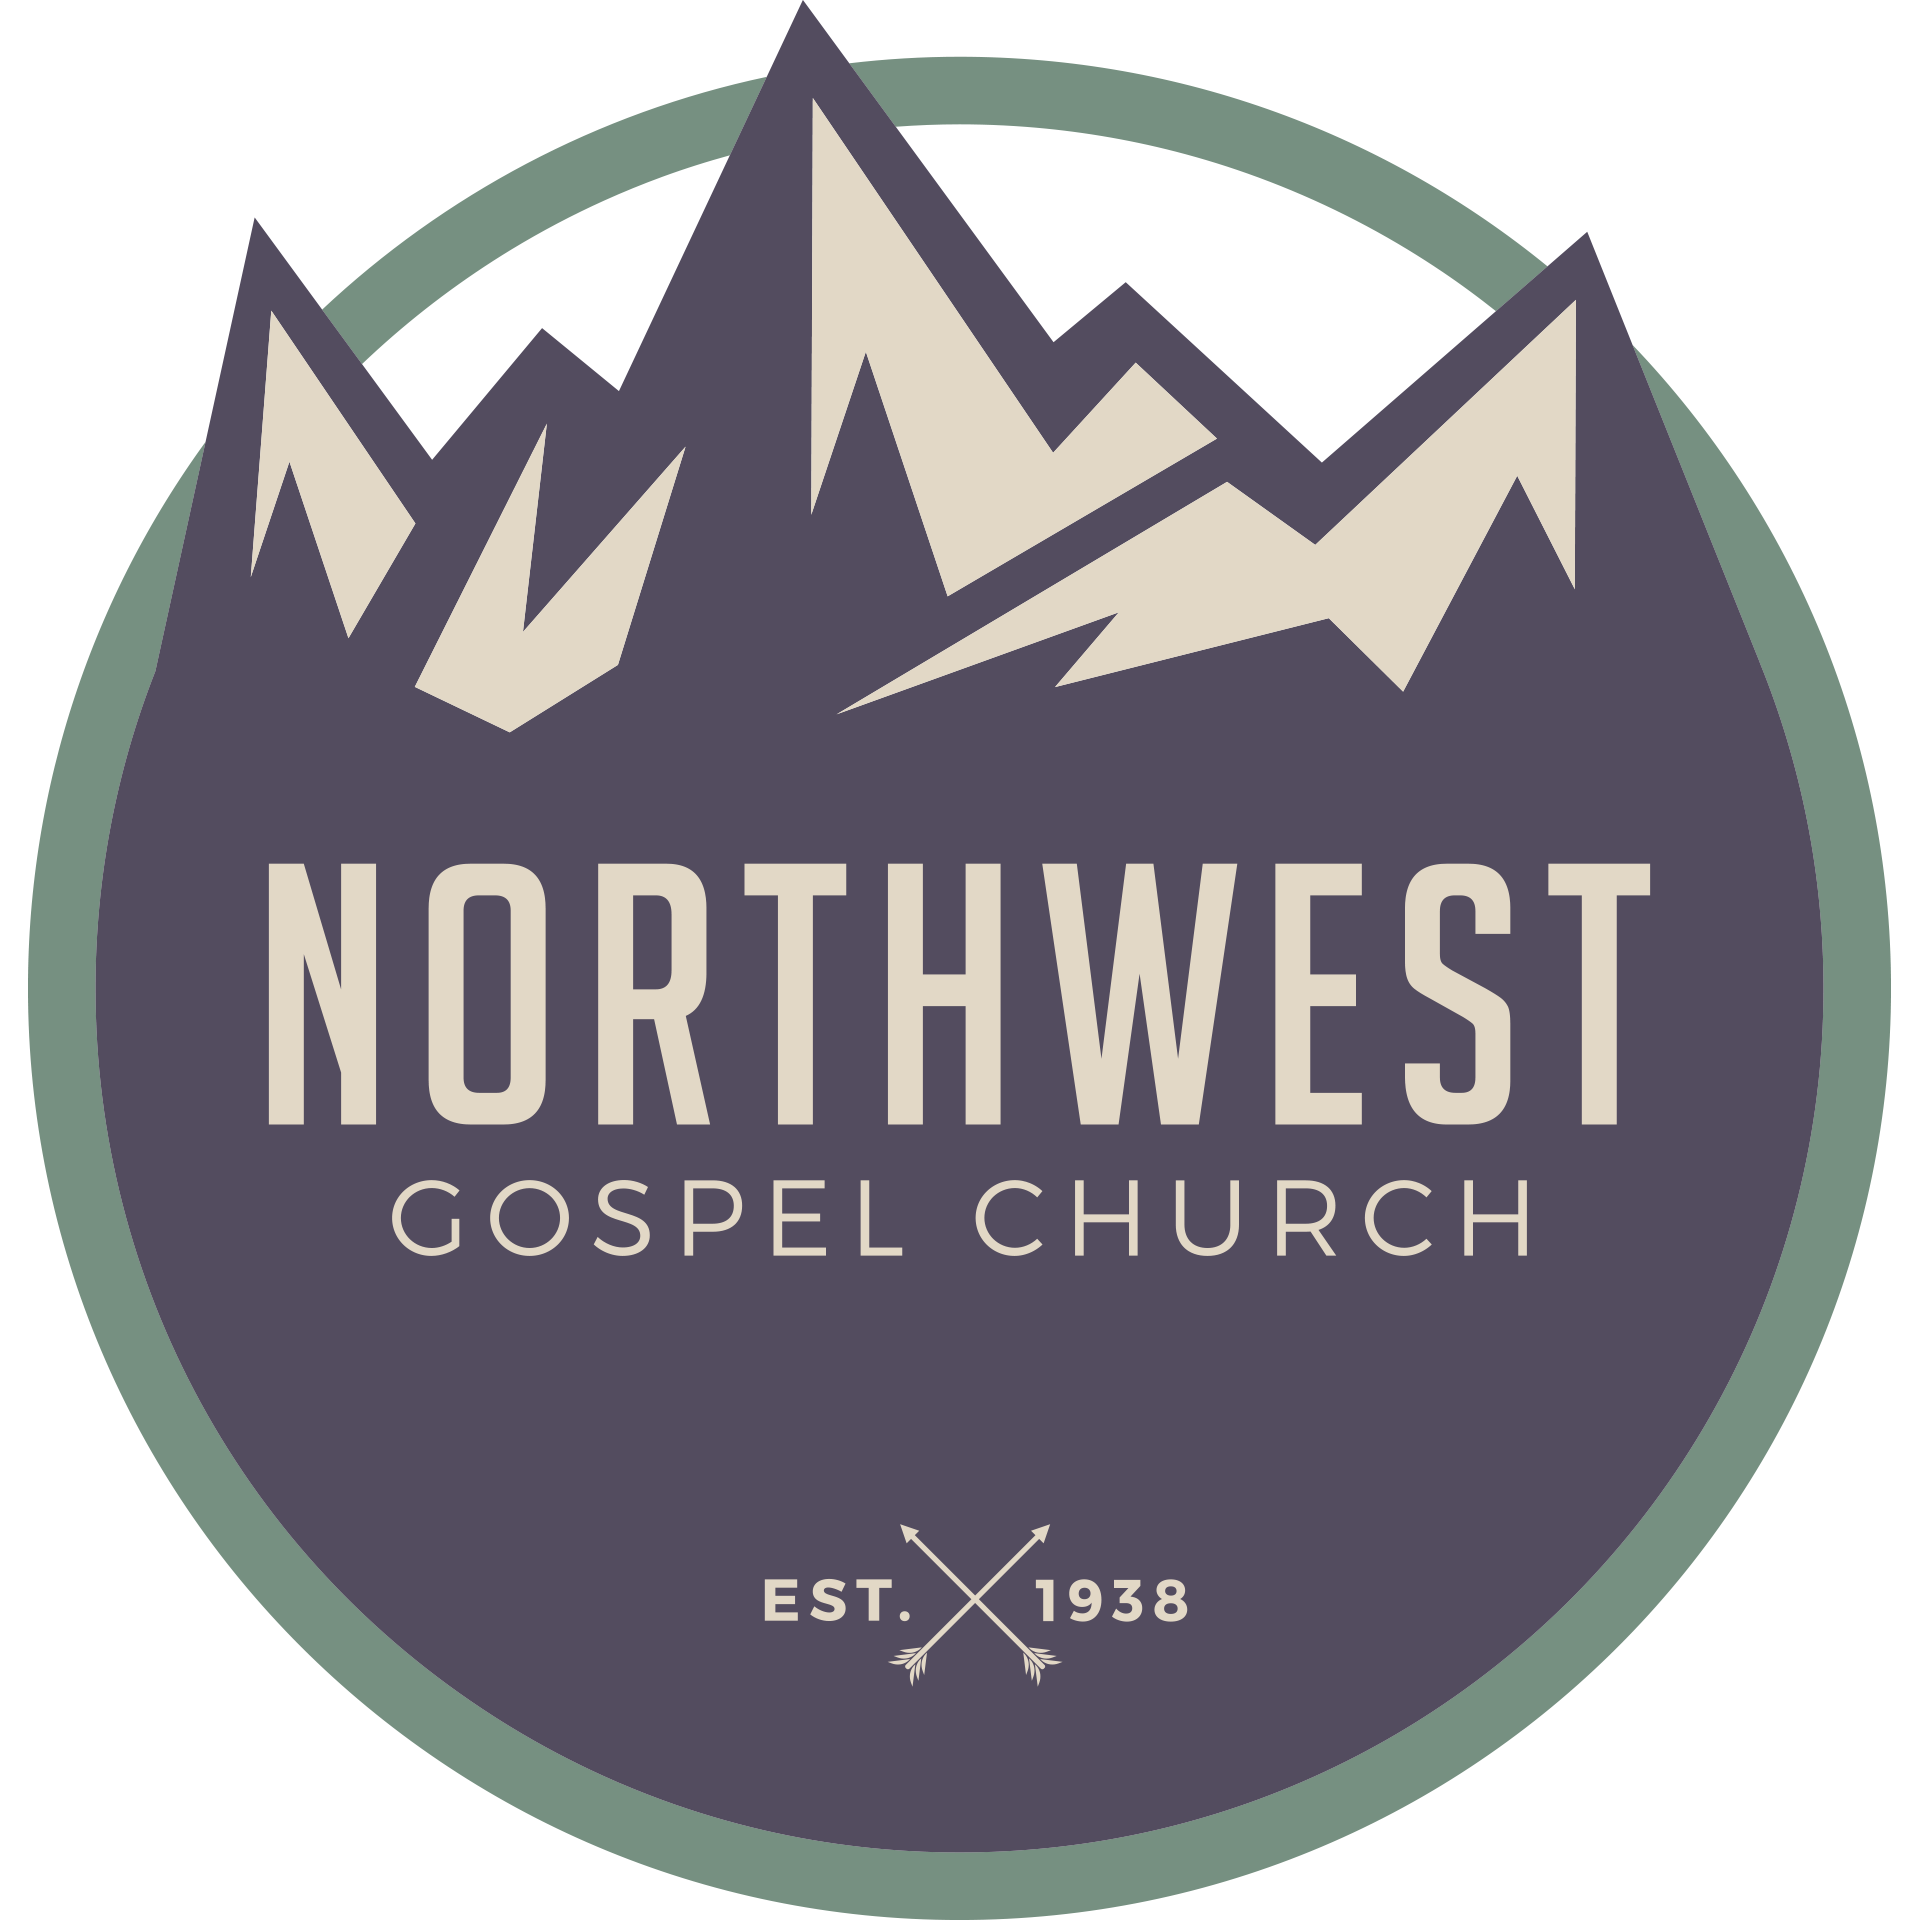 East Vancouver Sermons podcast contains the weekly sermon preached. You can always expect our teaching team to preach expositional sermons based in a single text.